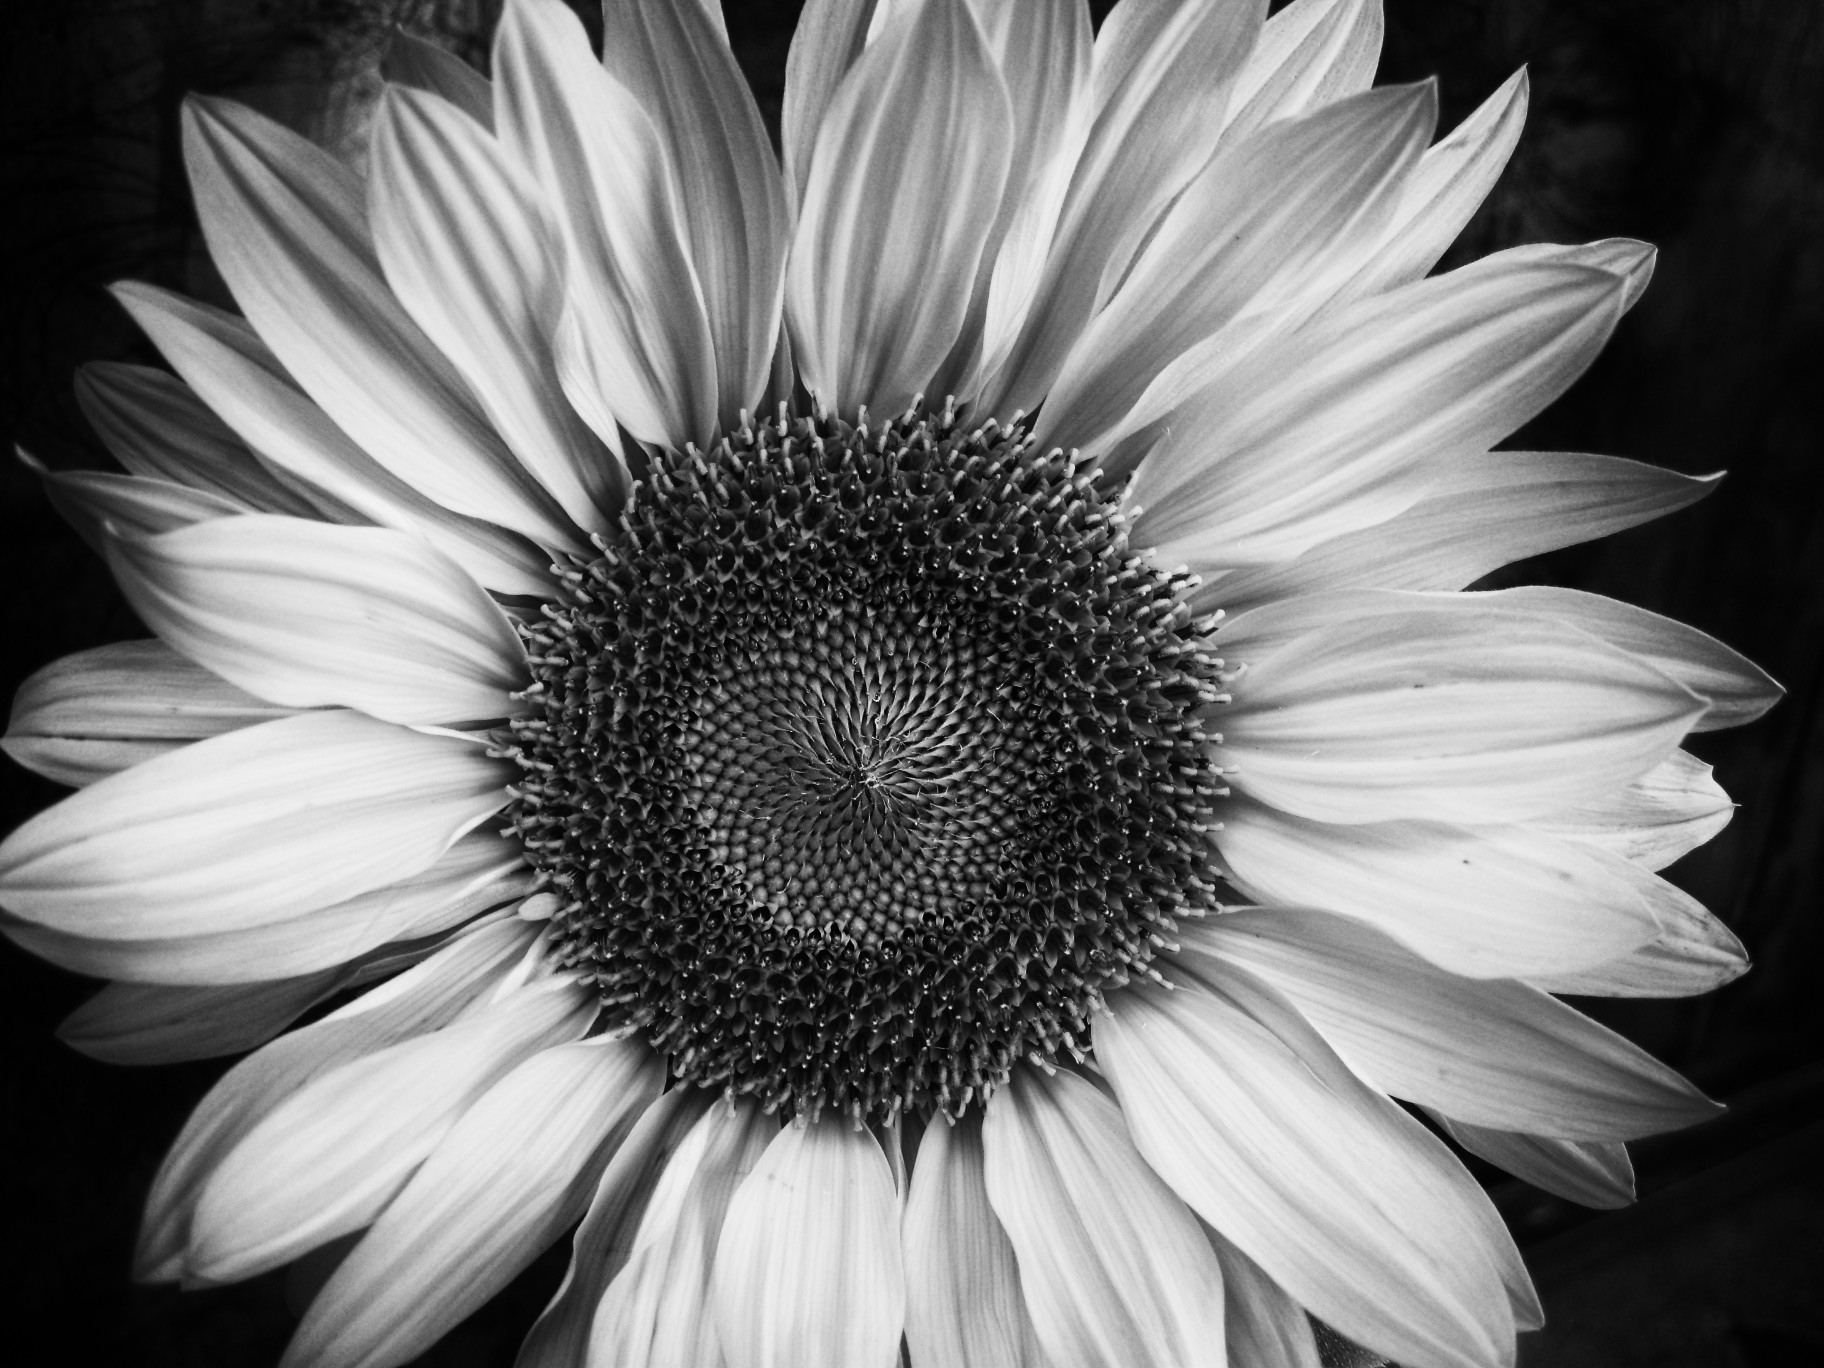 Black And White Images Of Flowers 11 Desktop Wallpaper ...